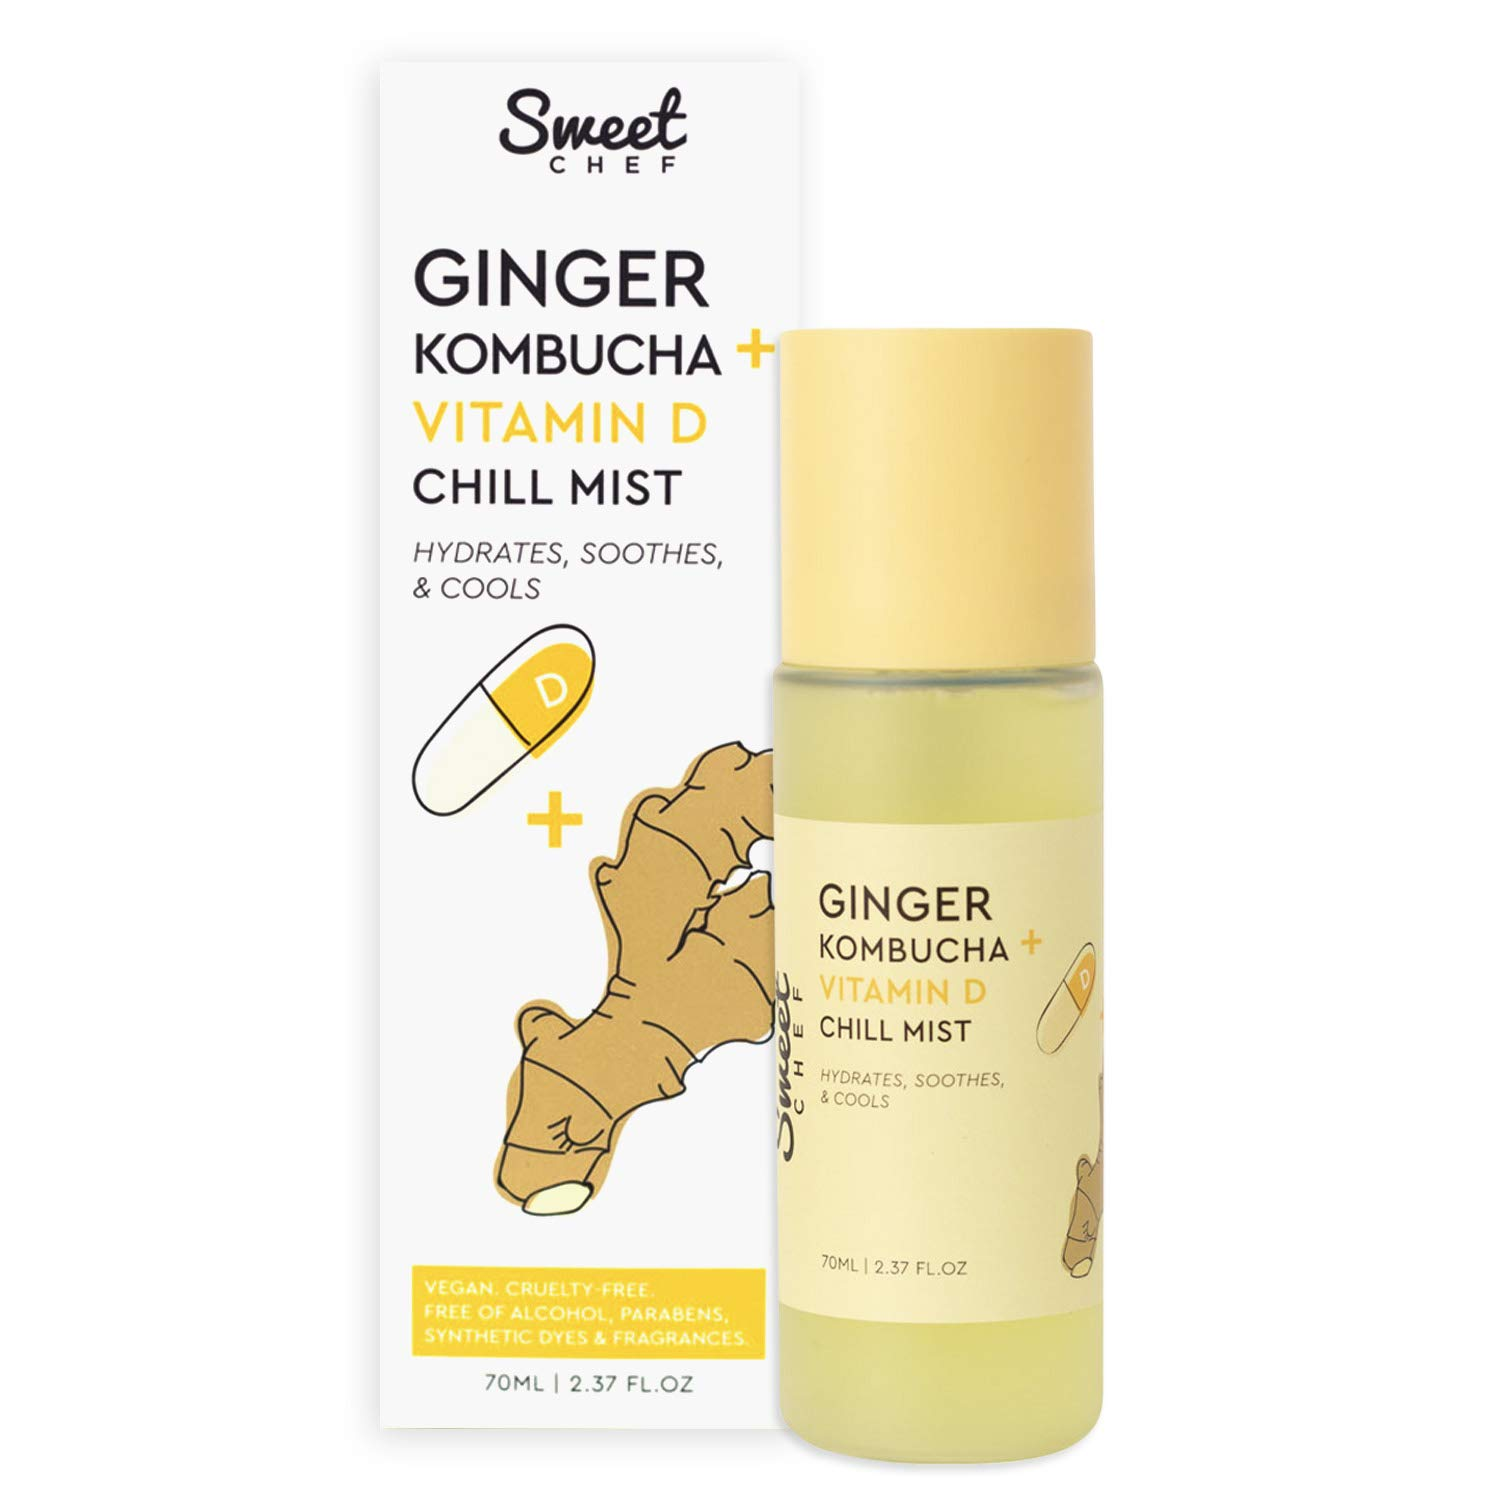 Sweet Chef Ginger Kombucha + Vitamin D Chill Mist - Hydrating Antioxidant-Rich Face Spray - Fights Free Radical Damage, Soothes Skin + Boosts Radiance (70ml / 2.37 fl oz)